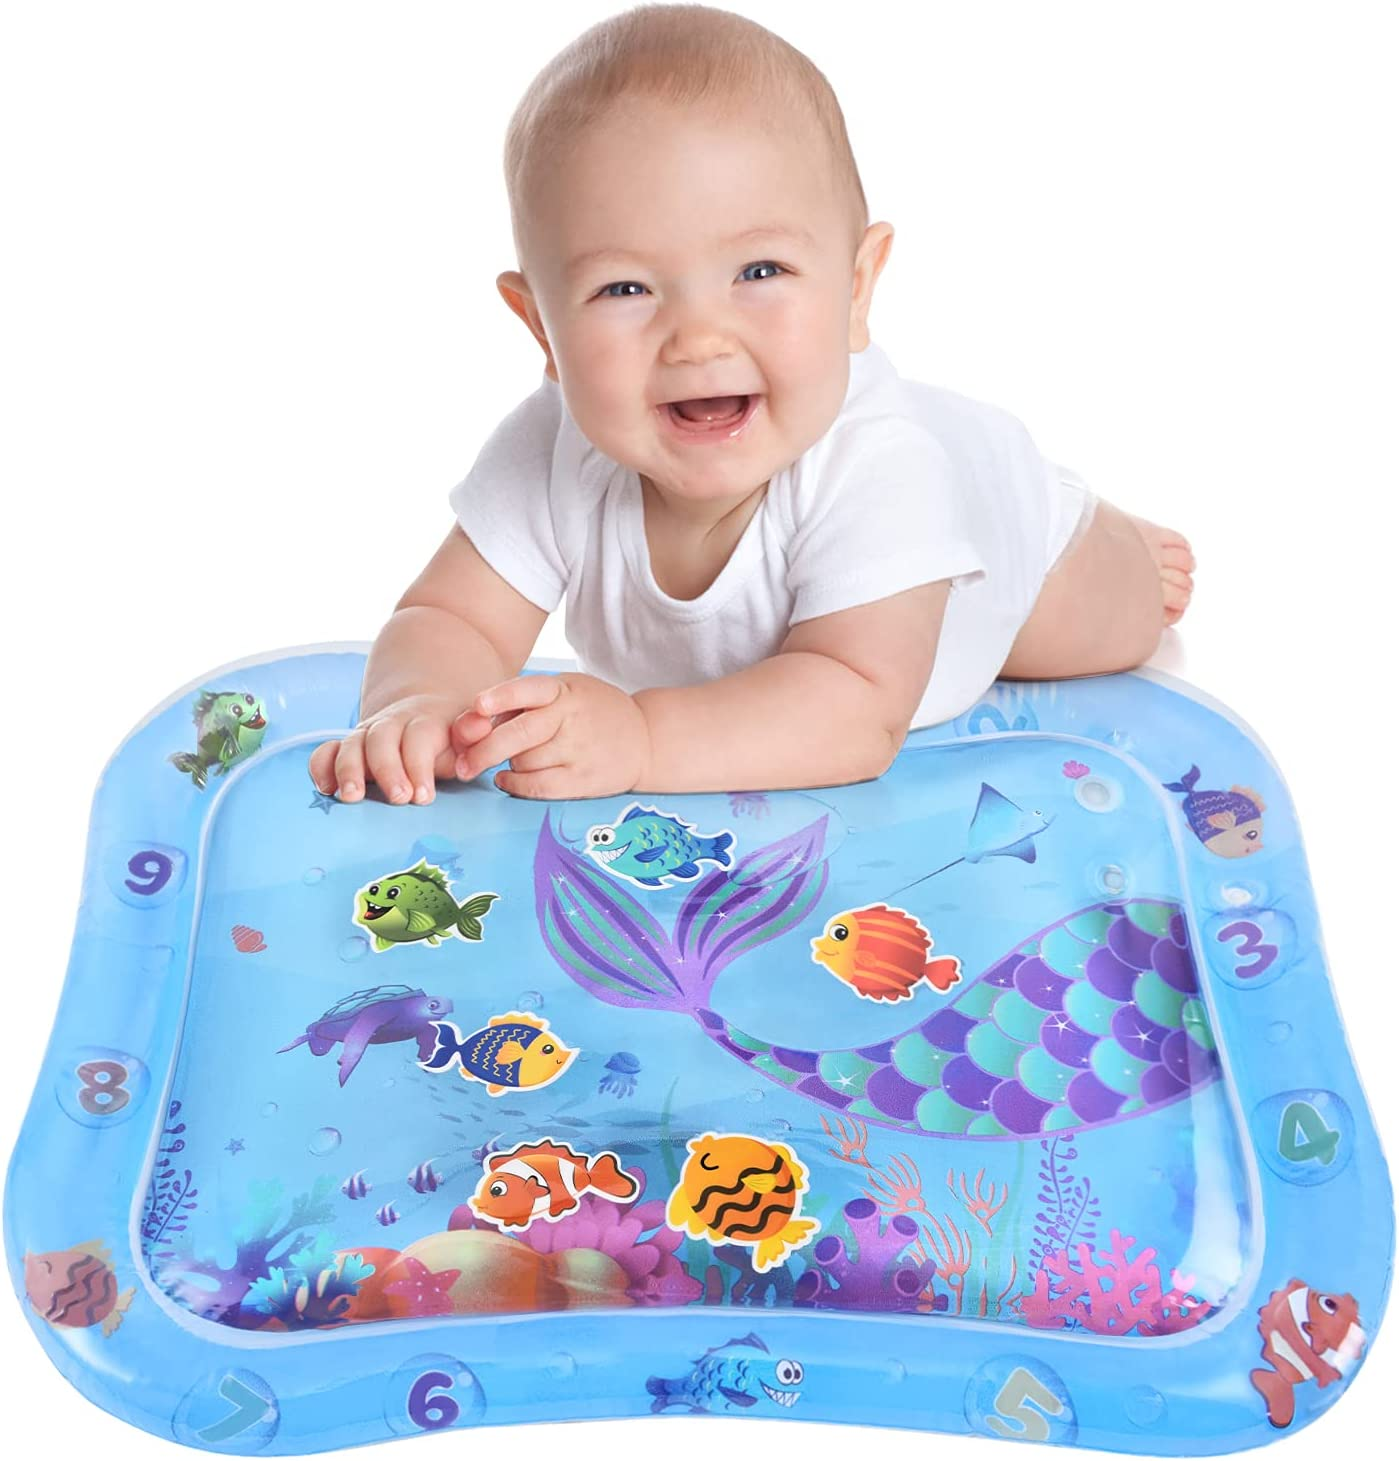 WERNNSAI Tummy Time Water Mat - 26'' x 20'' Water Play Mat for Baby Girls Boys Inflatable Activity Center Fun Infant Toys for 3 6 9 Months Baby Stimulation Growth (Mermaid)